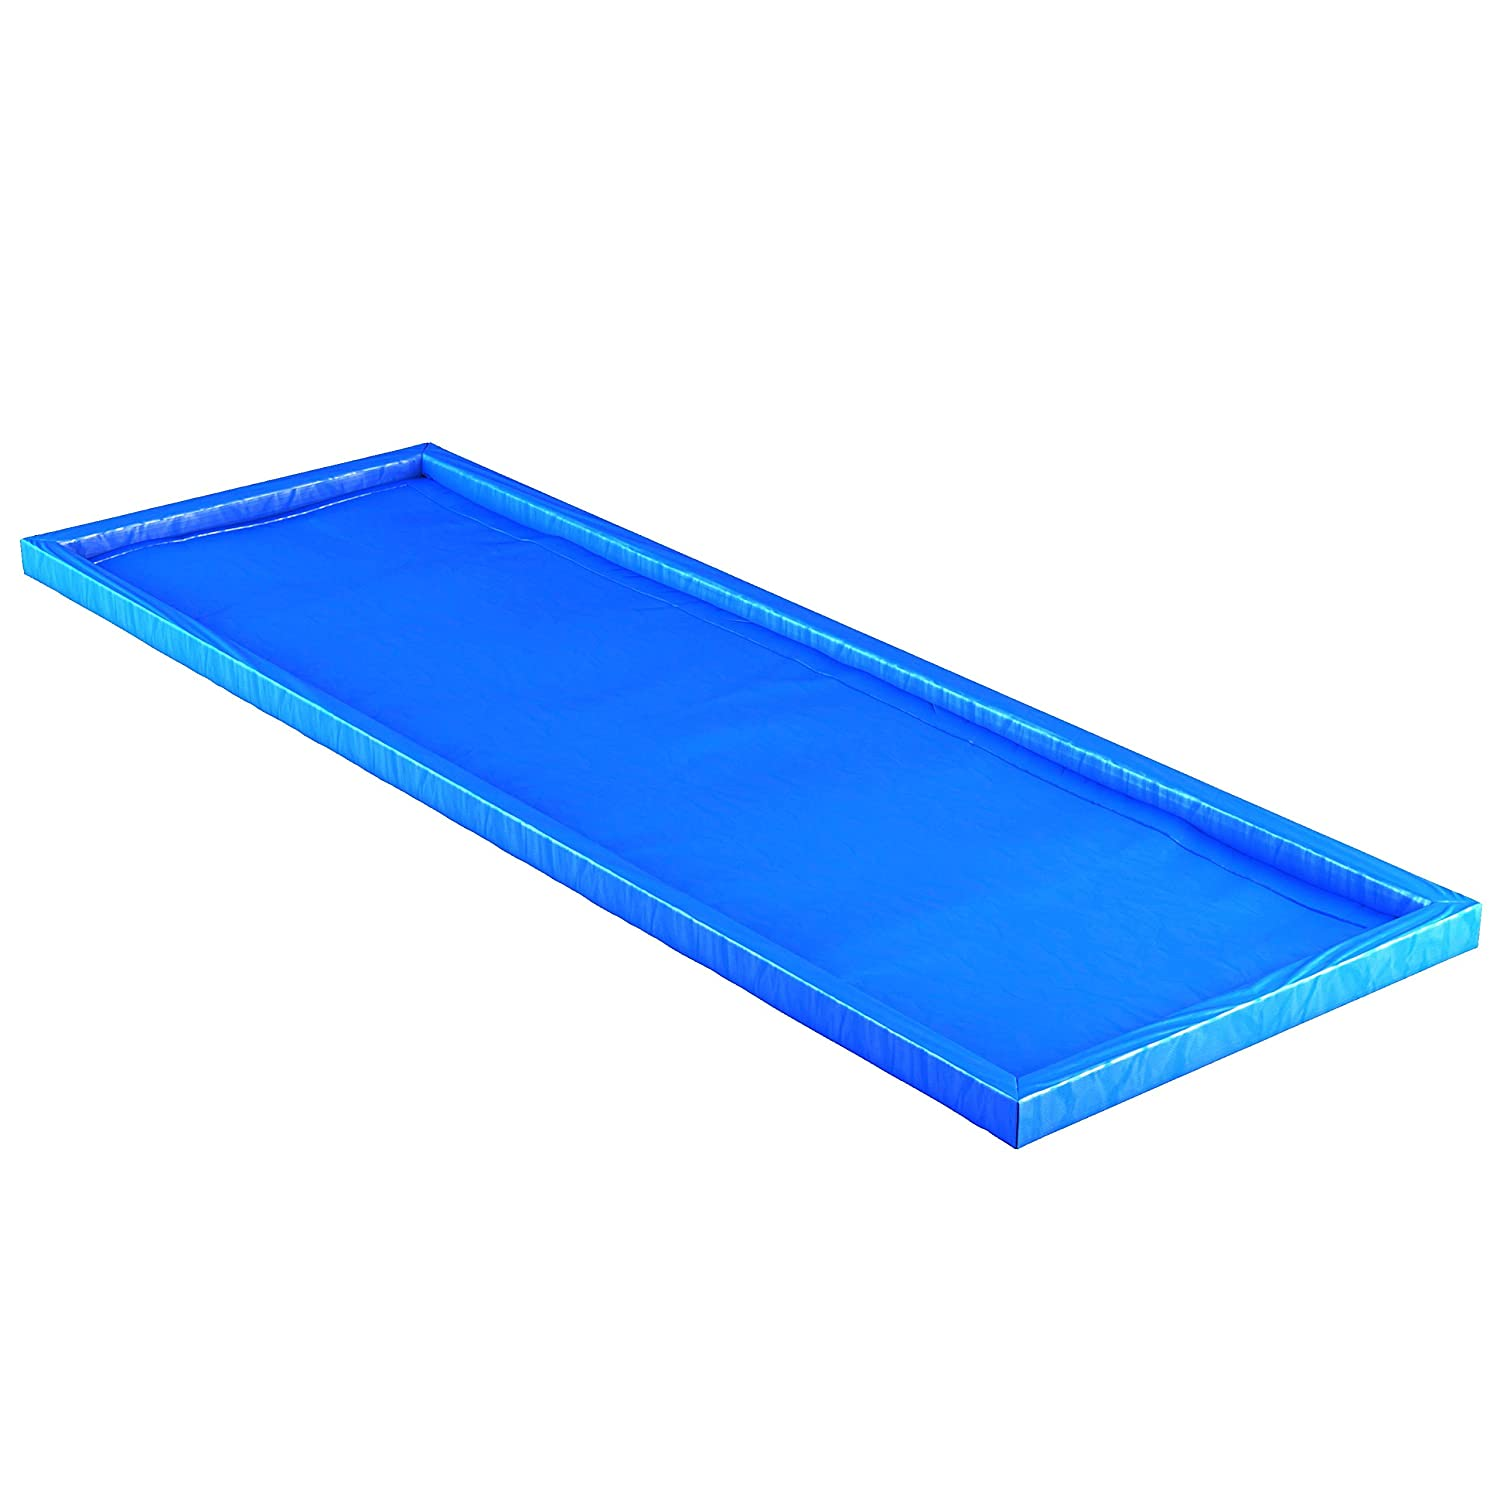 Portable Show Jumping or Cross Country Water Tray for Competition or Horse Training Various Sizes Sizes Suit Beginner to Advanced Horse and Rider. Echo Beach Equestrian Liverpool Water Jump